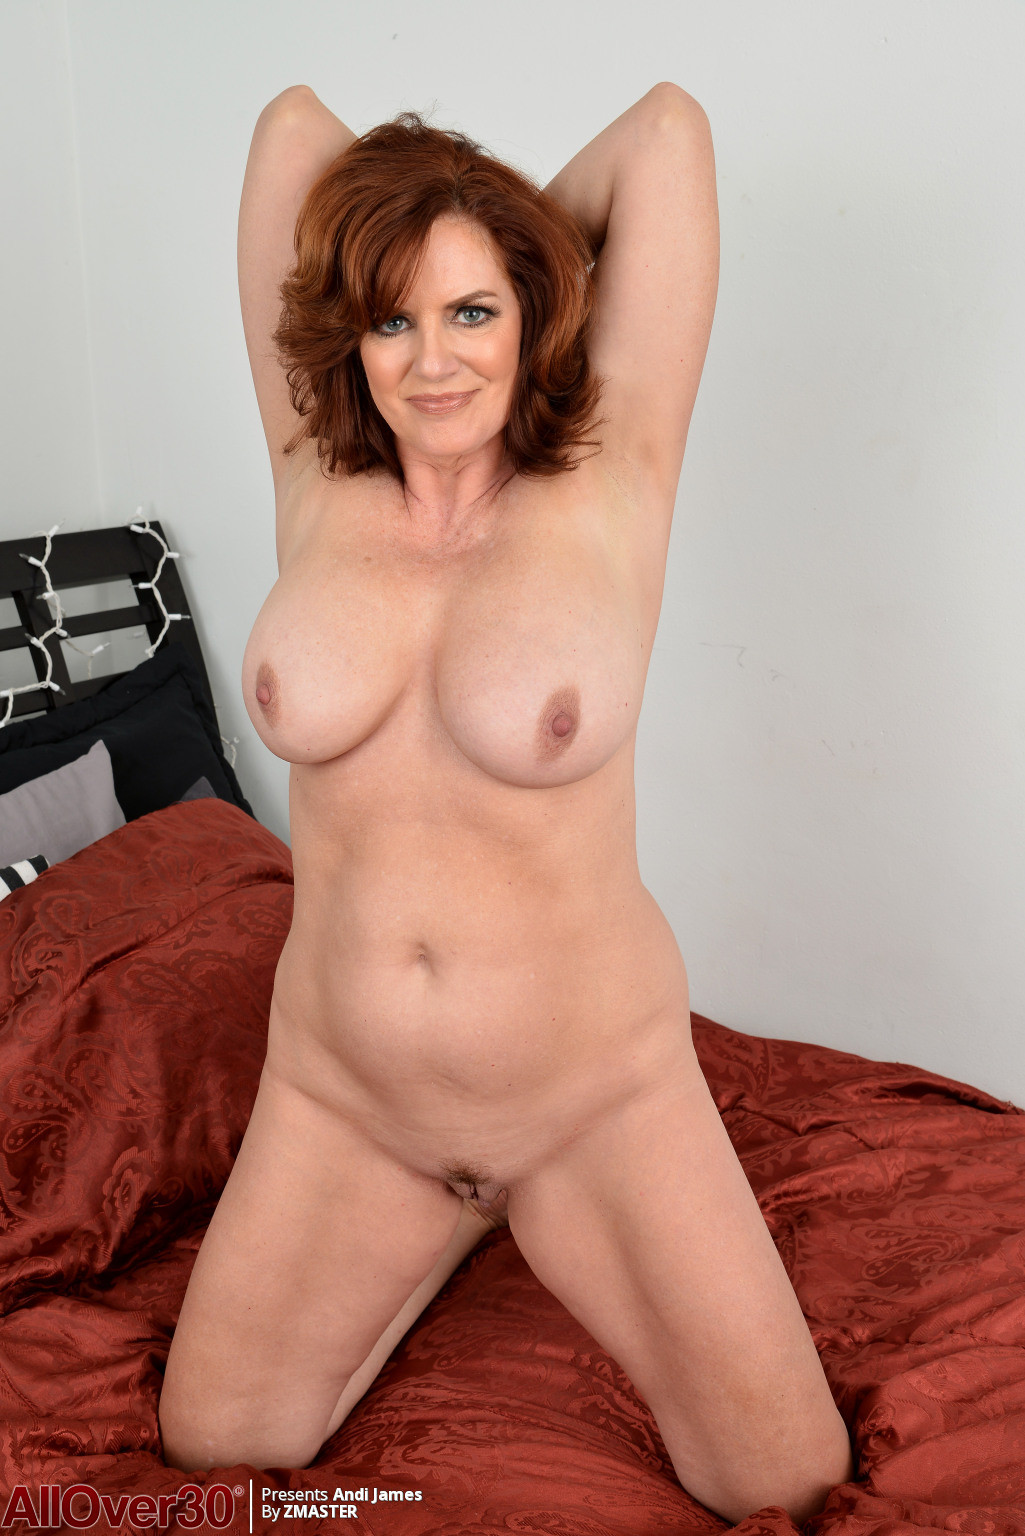 Naked plump redhead milfs sorry, that